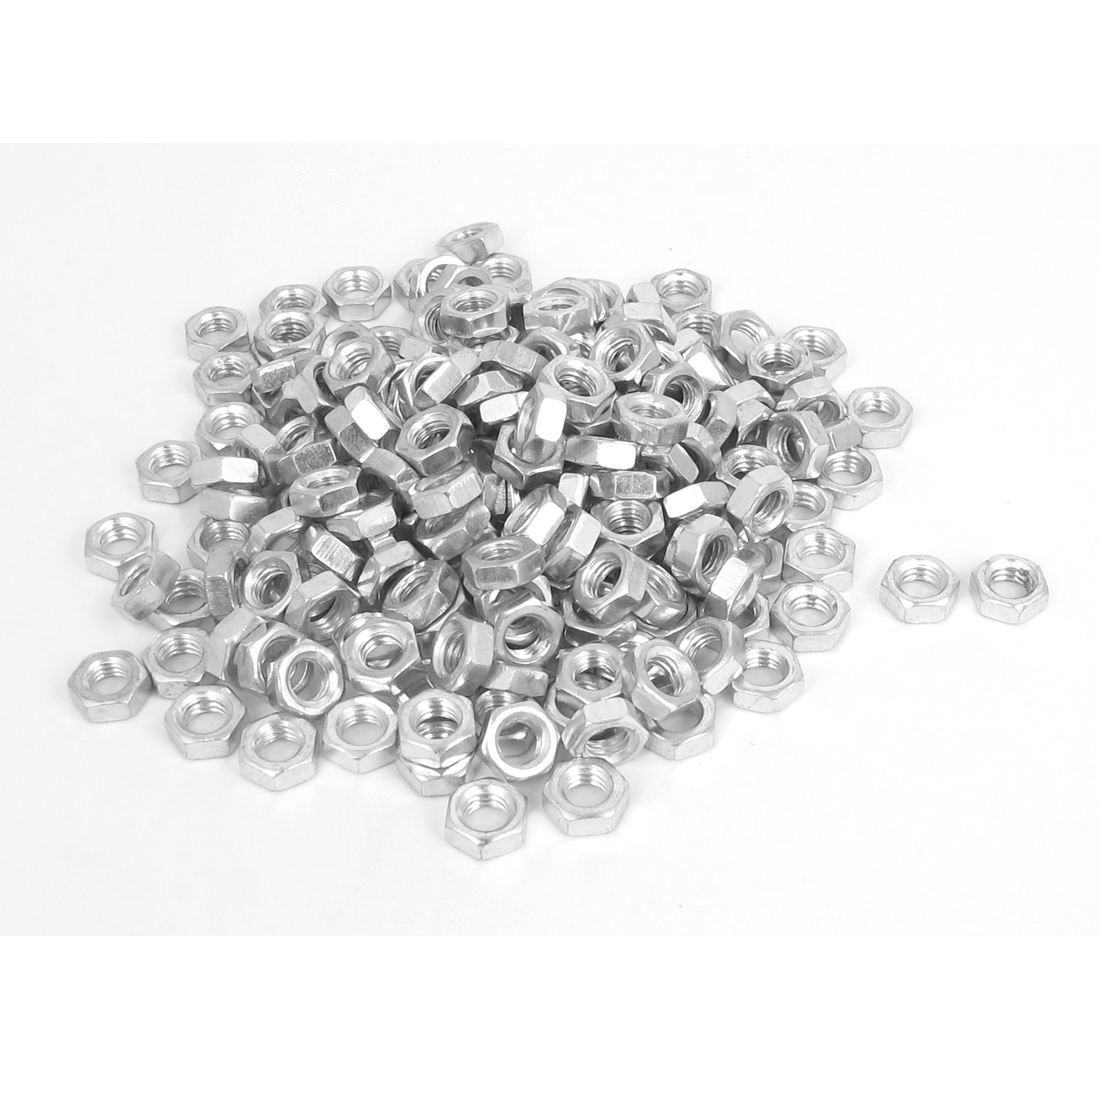 200 Pcs M5 Metal Machine Screw Hex Hexagon Nut DIN934